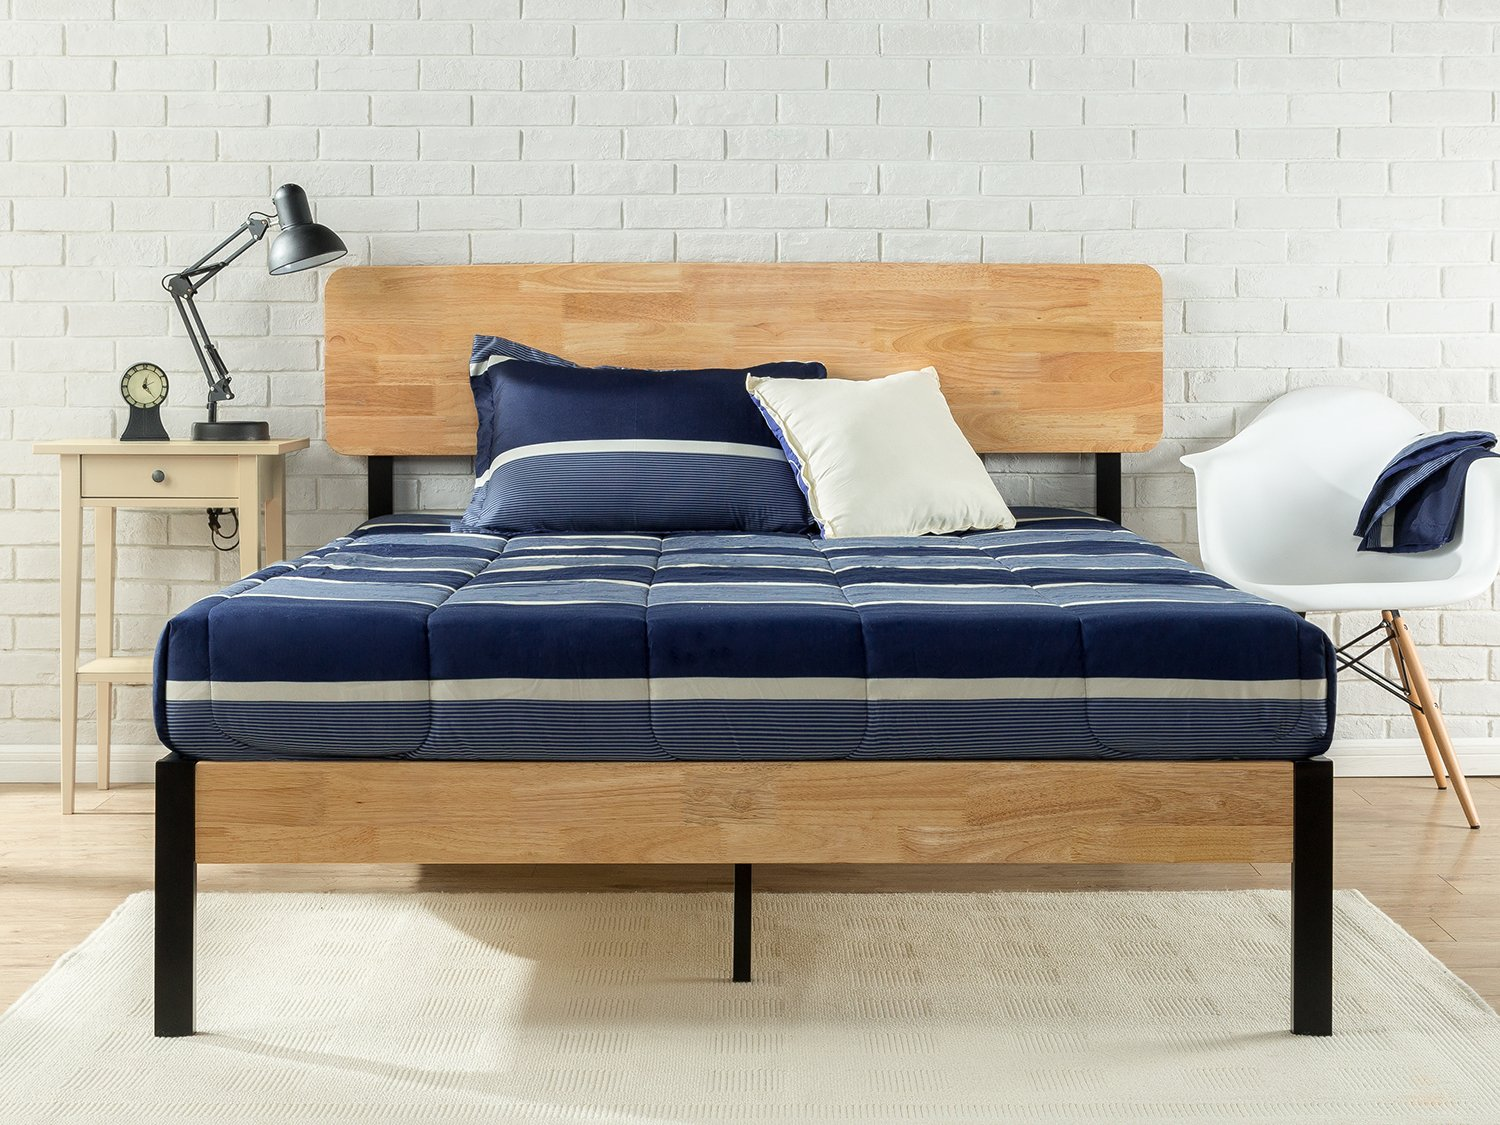 Zinus Olivia Metal and Wood Platform Bed with Wood Slat Support, Queen by Zinus